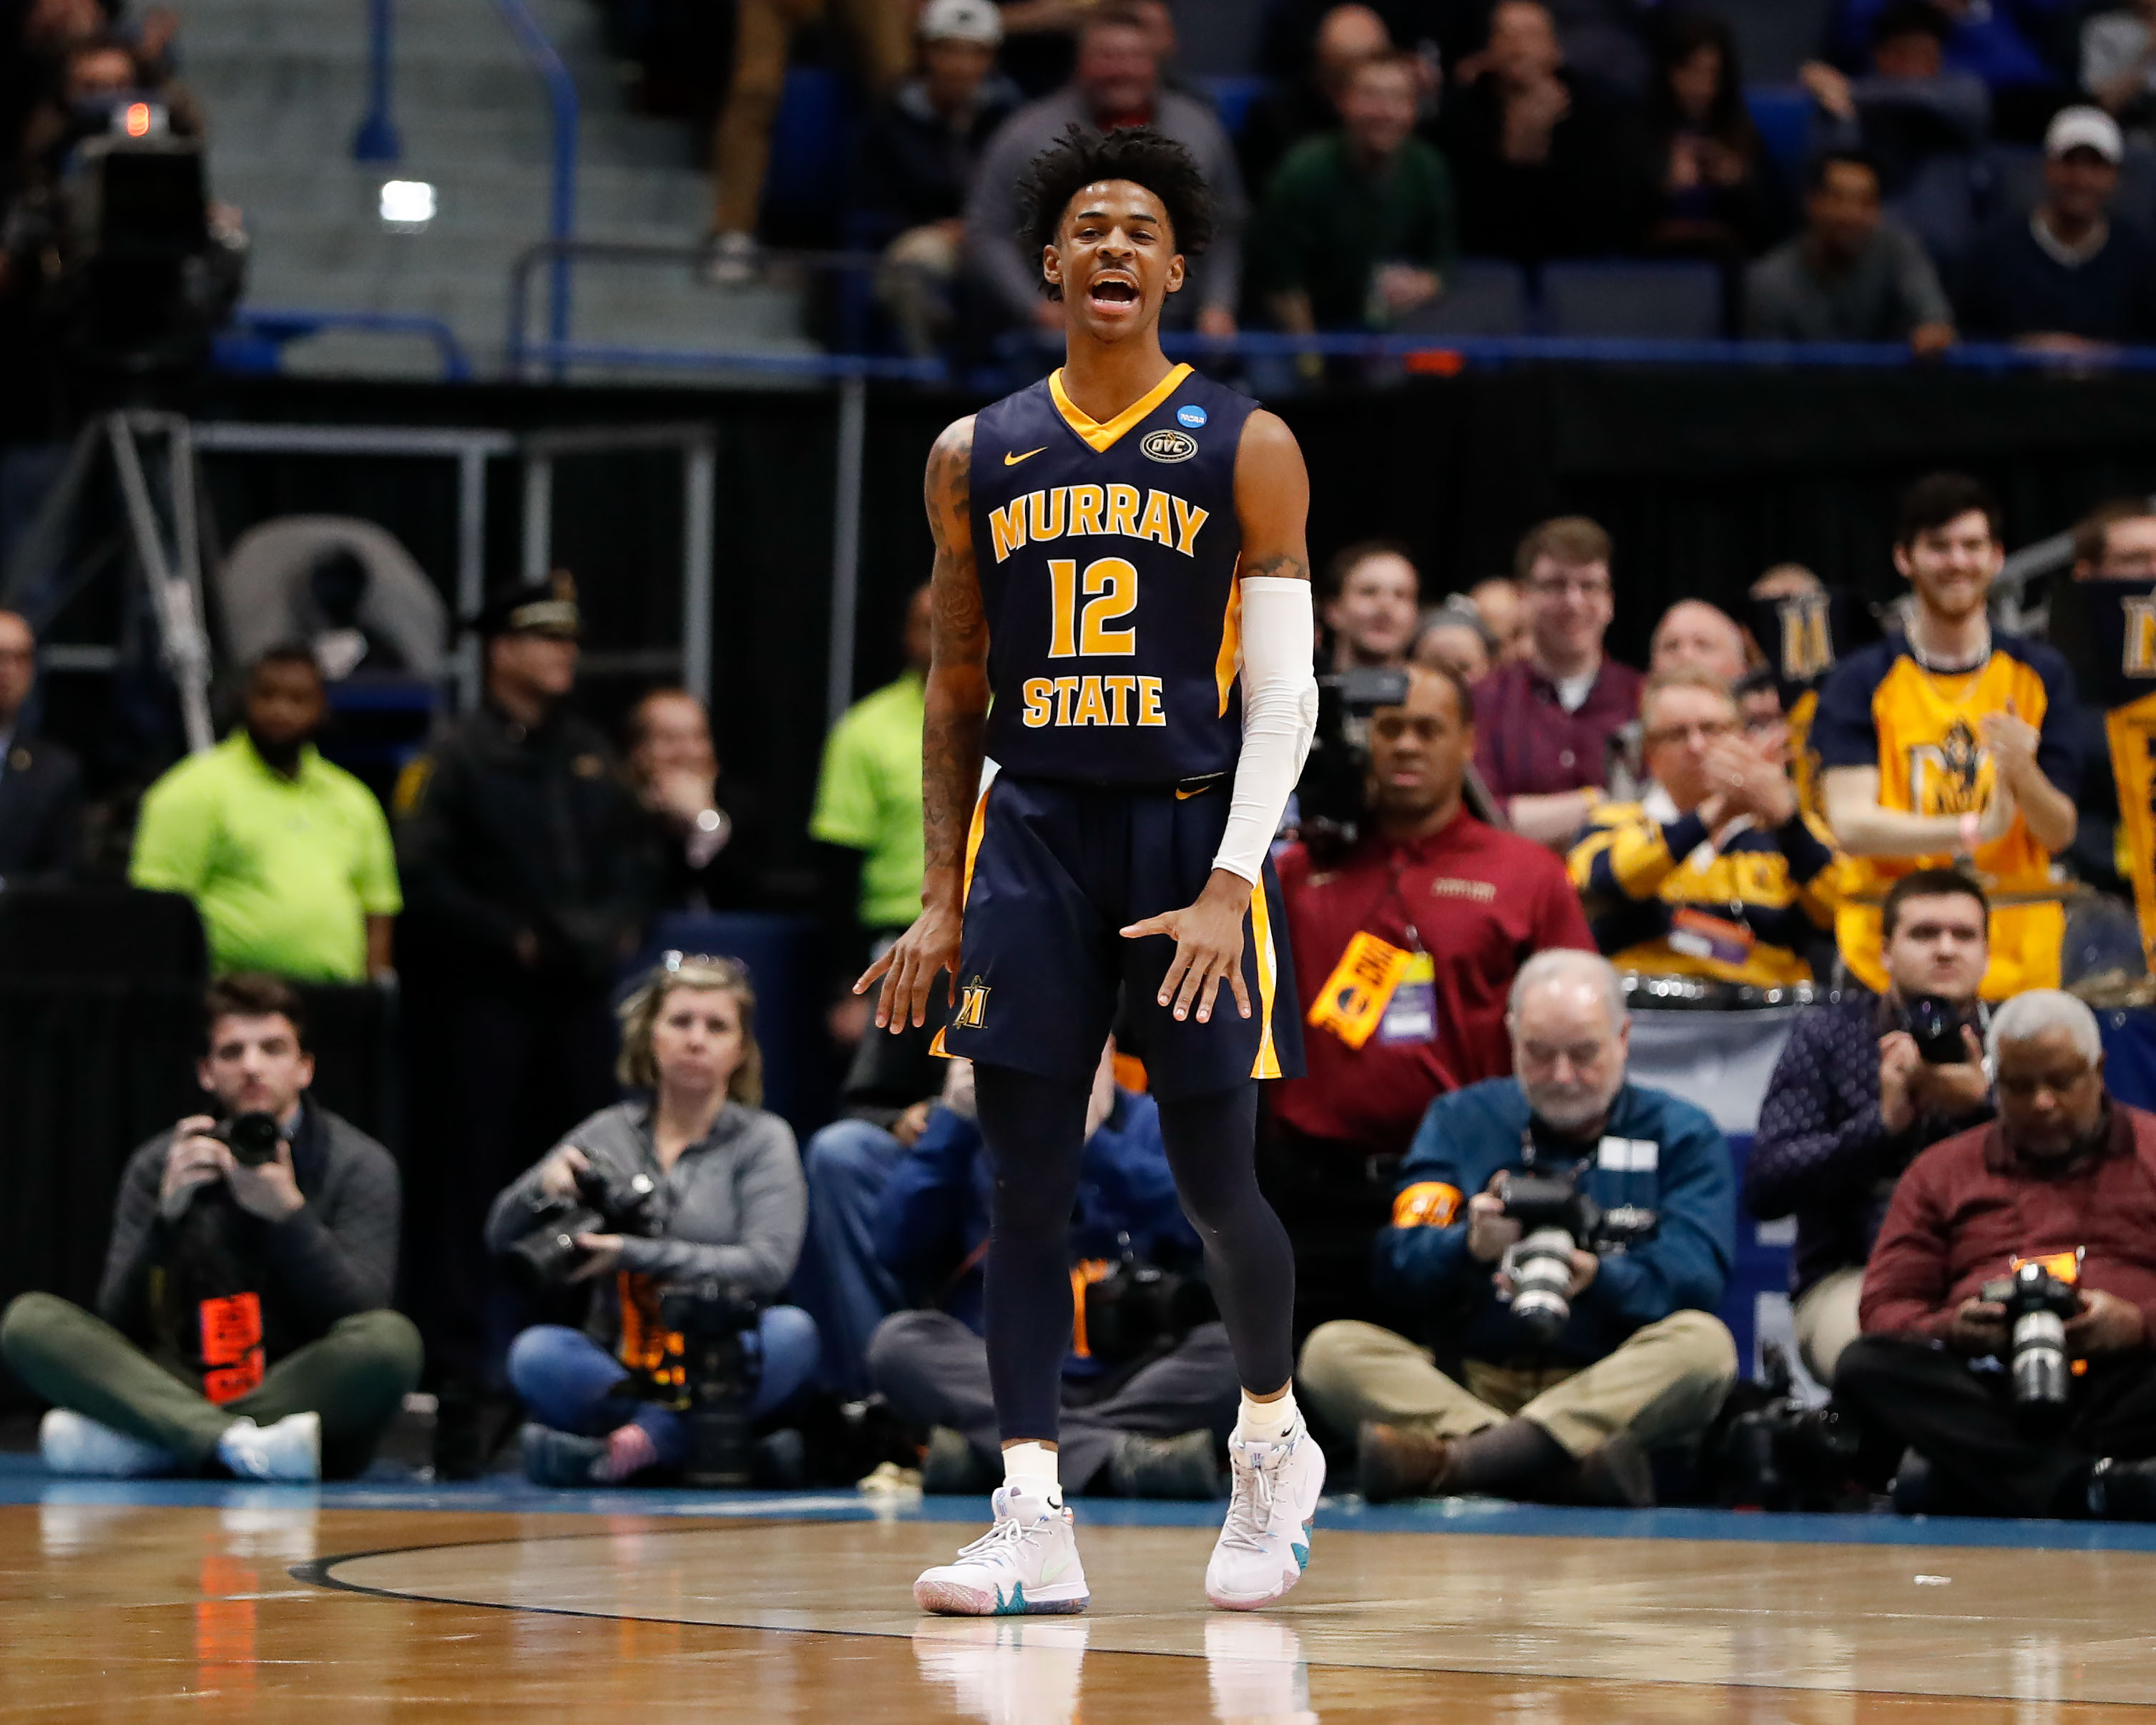 Ja Morant's NCAA tournament showed us why he's going to be a top NBA Draft pick